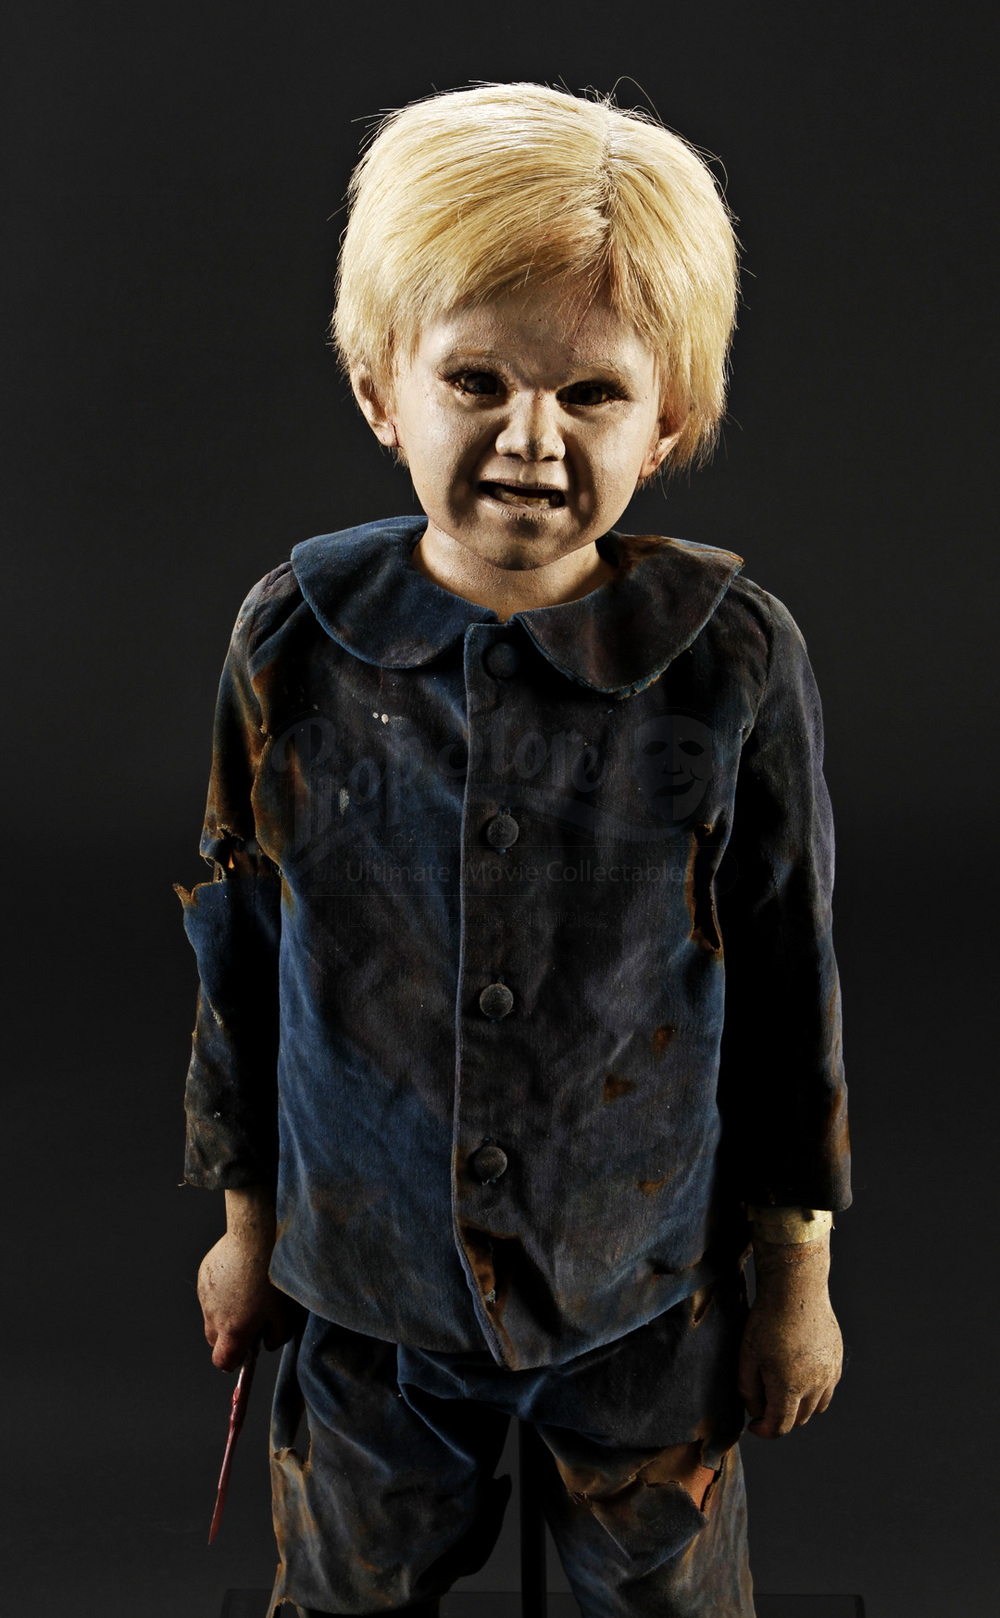 Full Size Gage Creed (Miko Hughes) Puppet   Prop Store ...